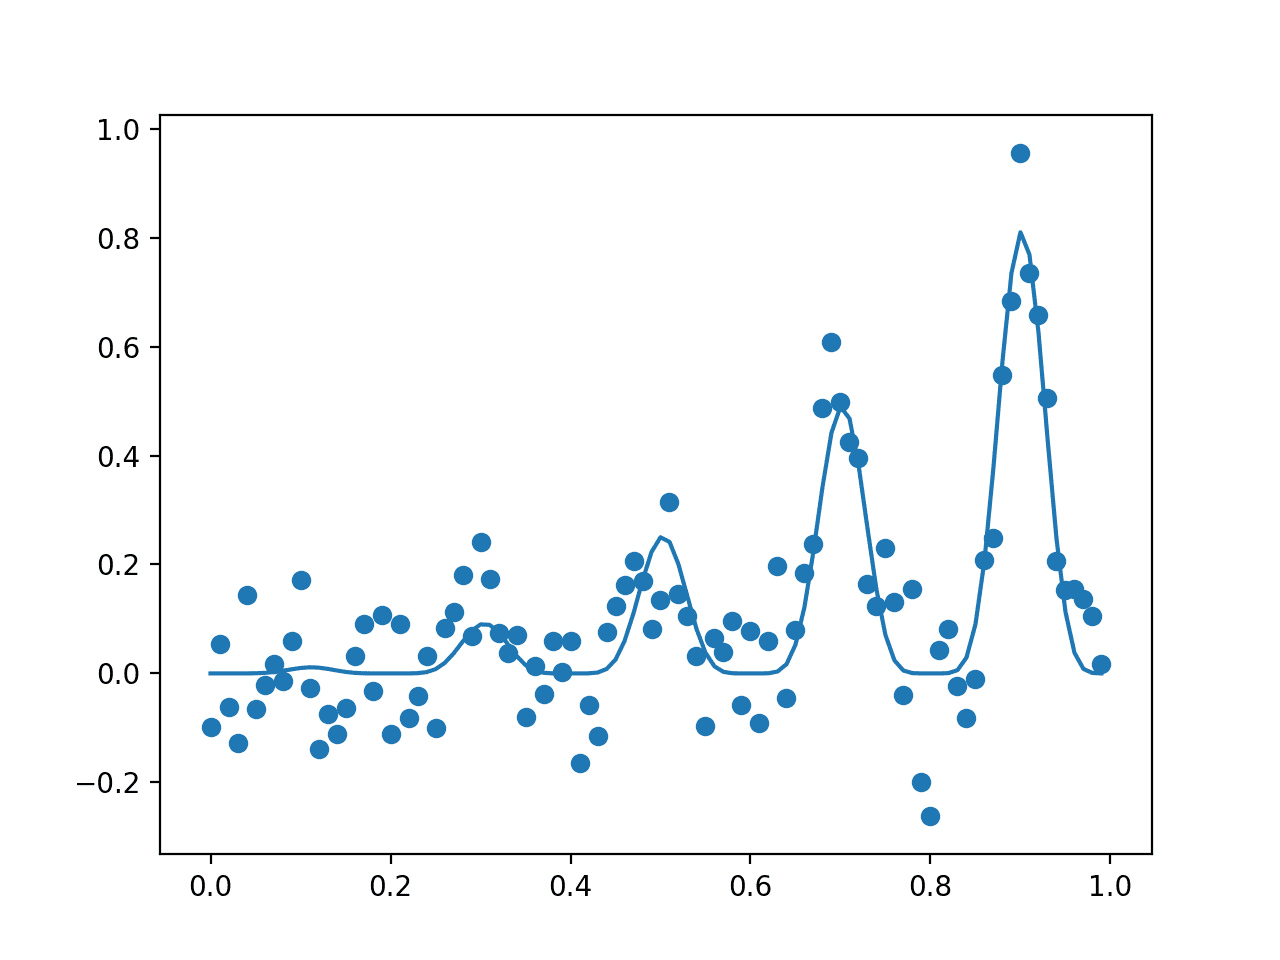 Plot of The Input Samples Evaluated with a Noisy (dots) and Non-Noisy (Line) Objective Function